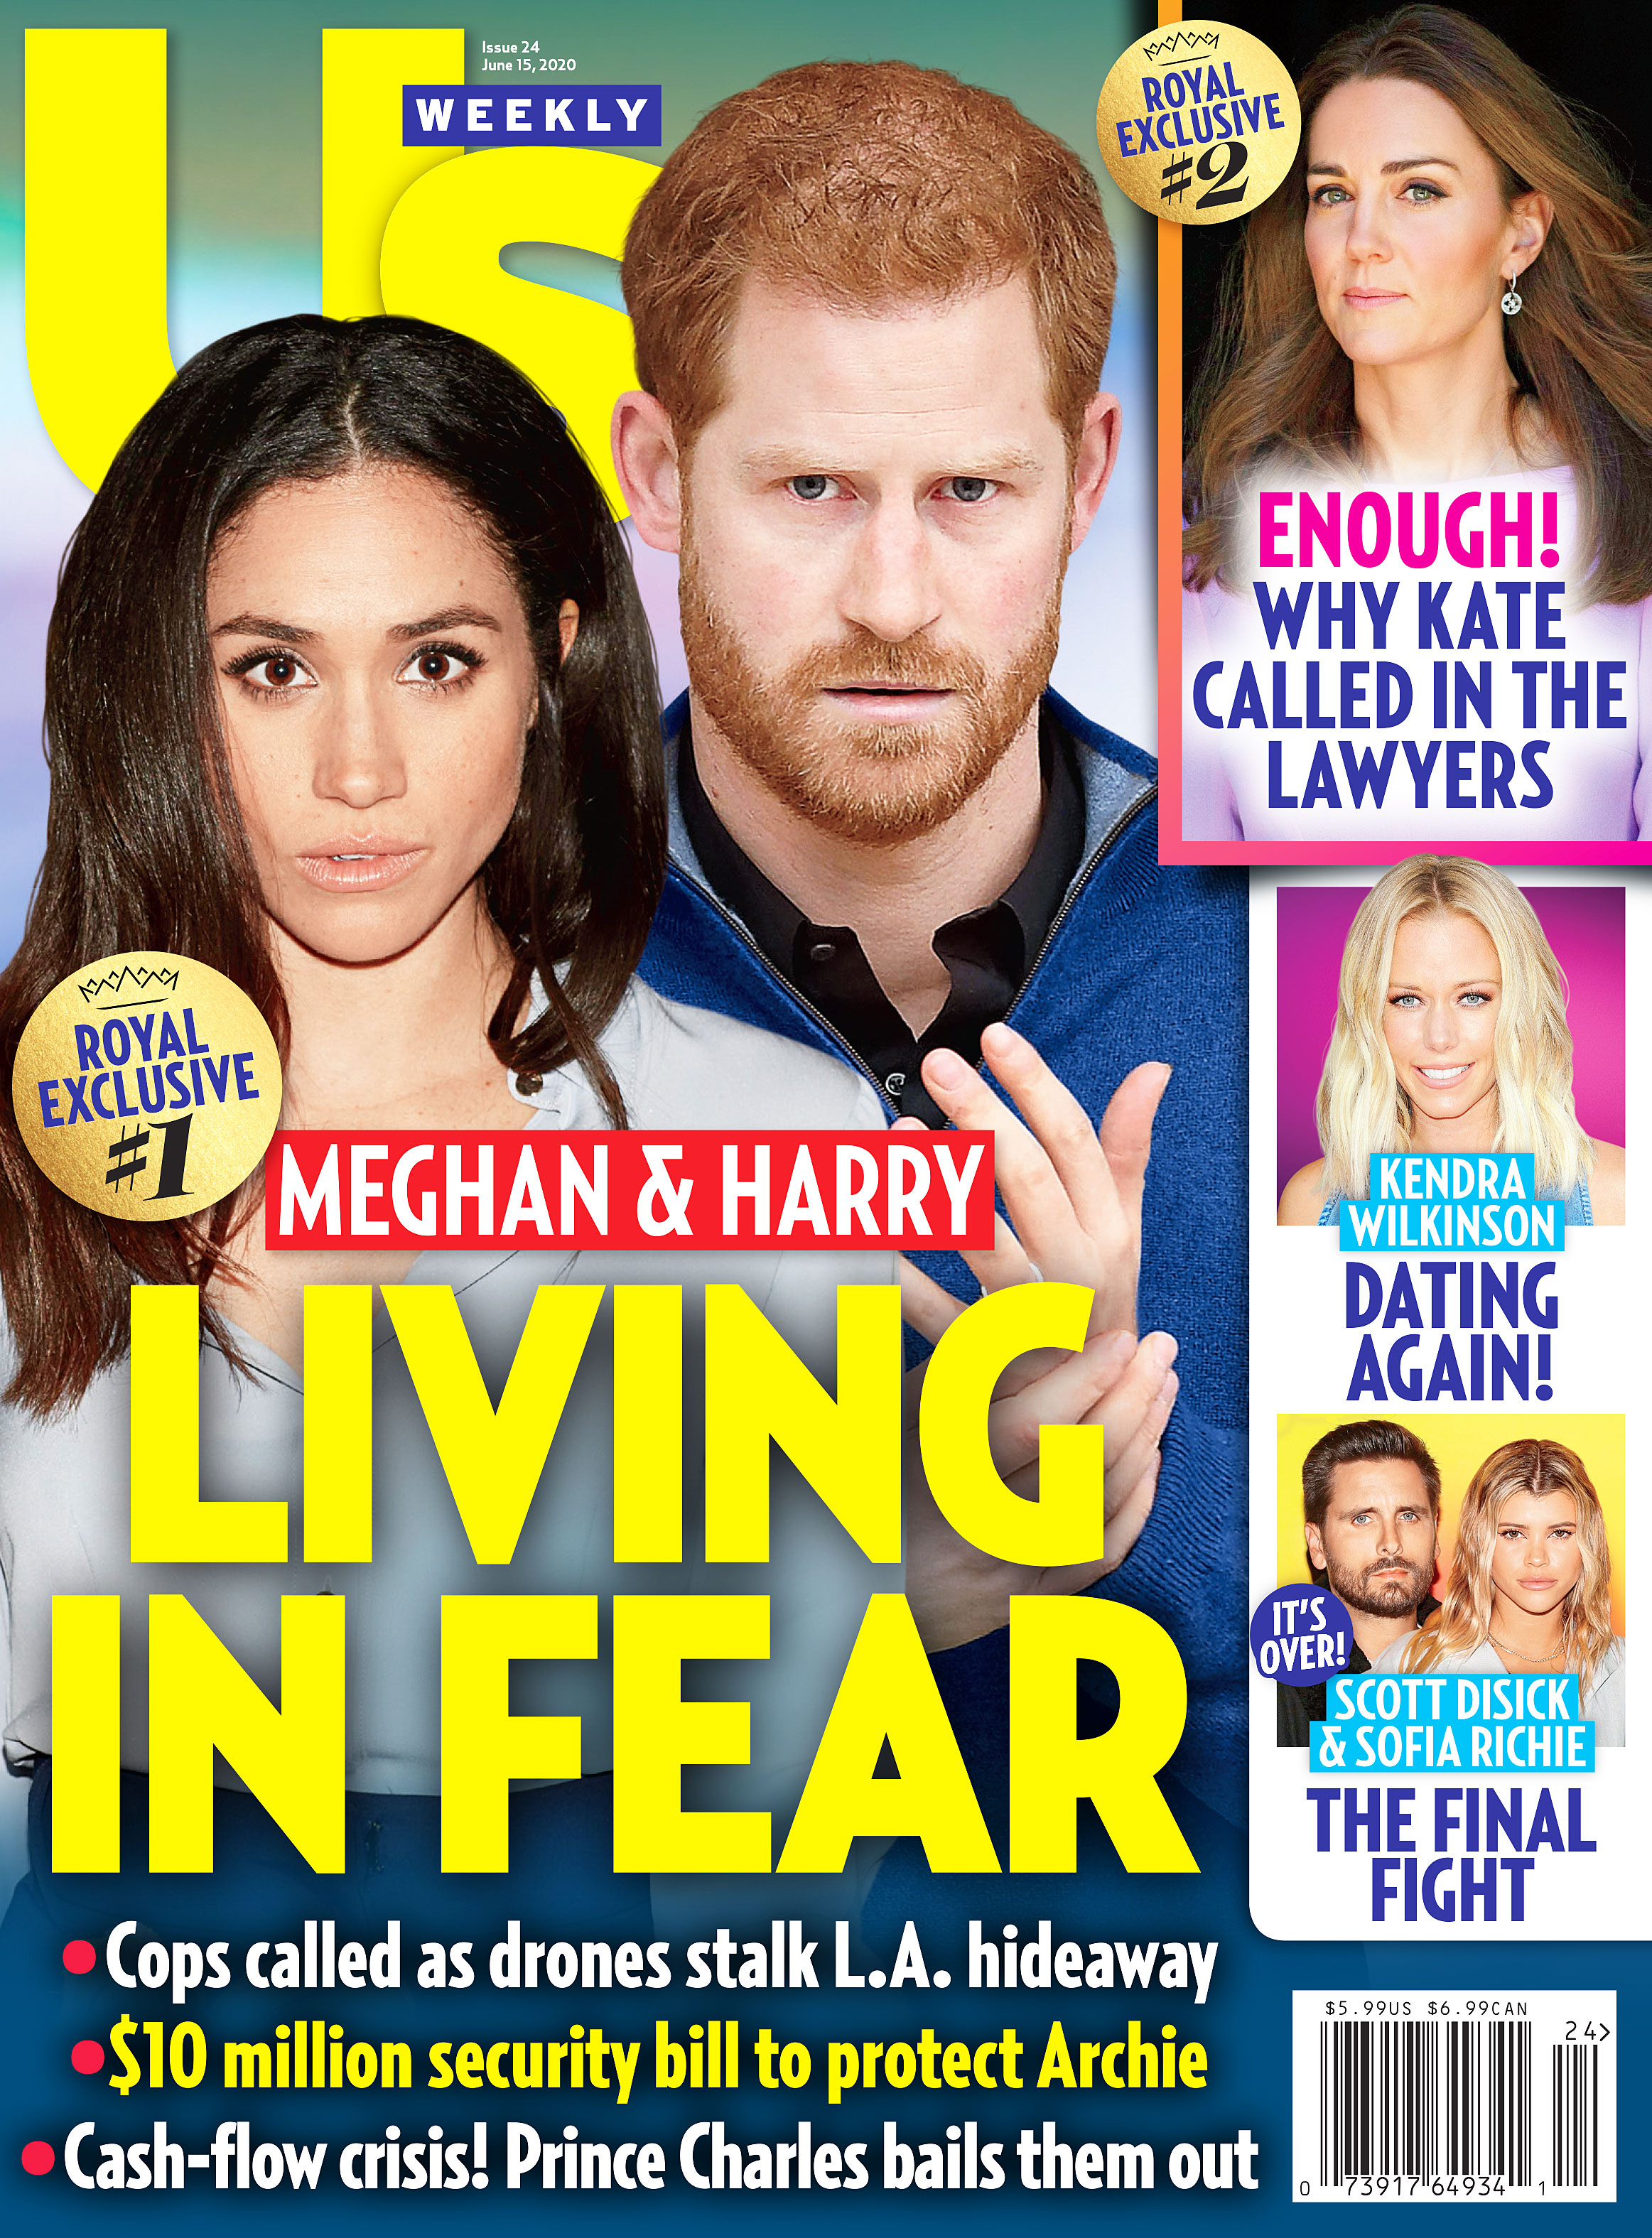 Us Weekly Cover Issue 2420 Prince Harry and Meghan Markle